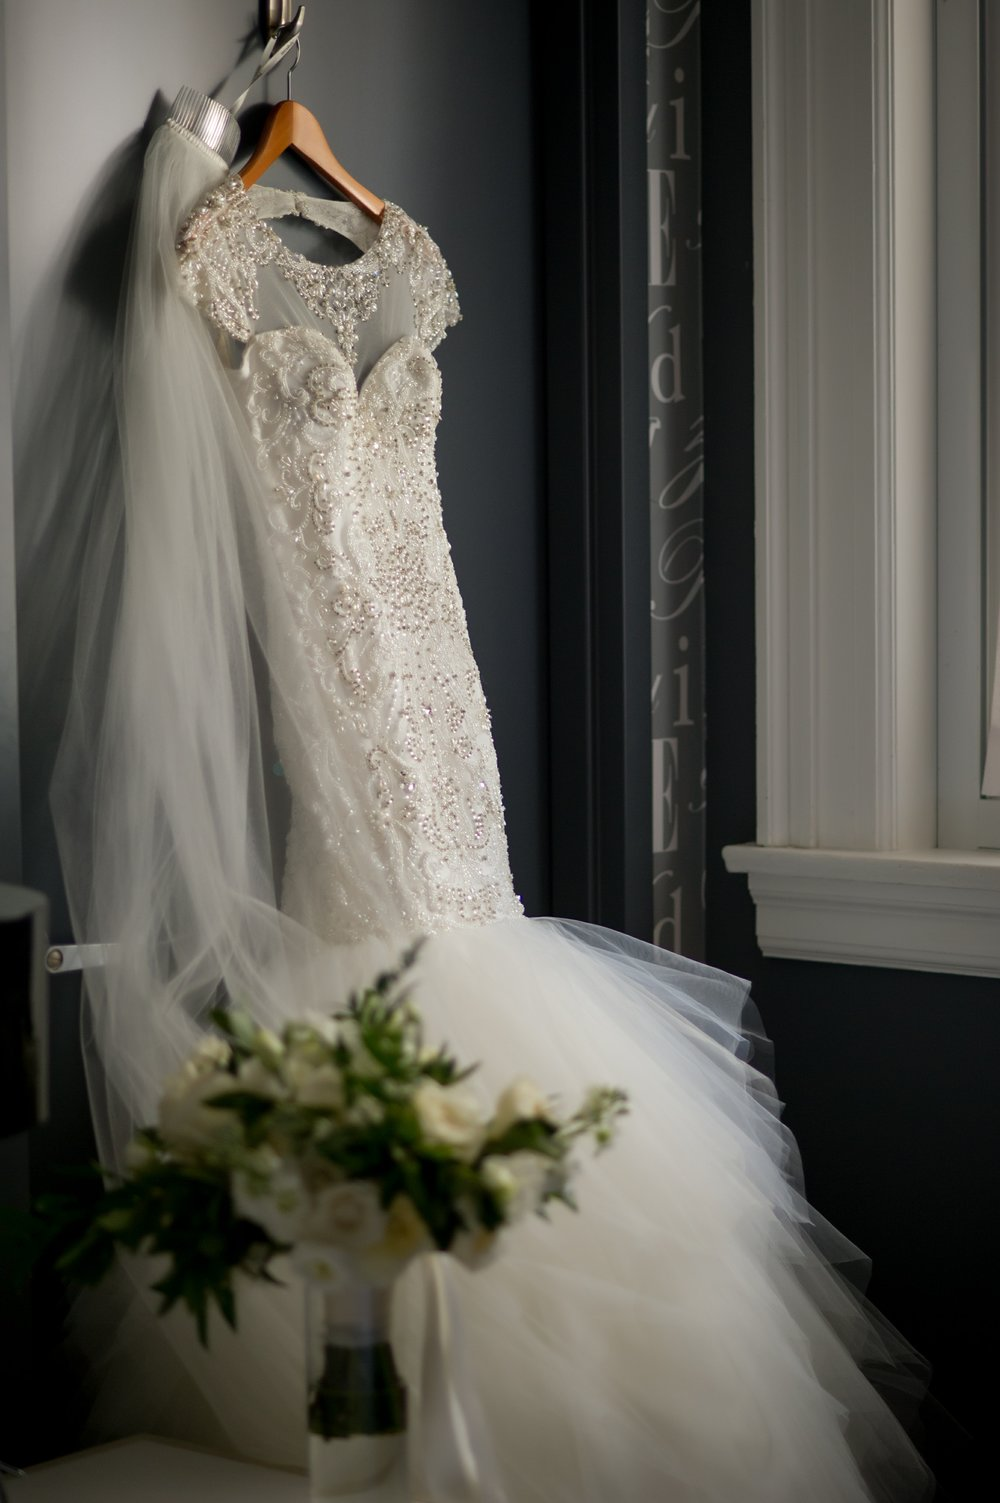 The bride wore a stunning bead embellished, lace and tule mermaid style gown.